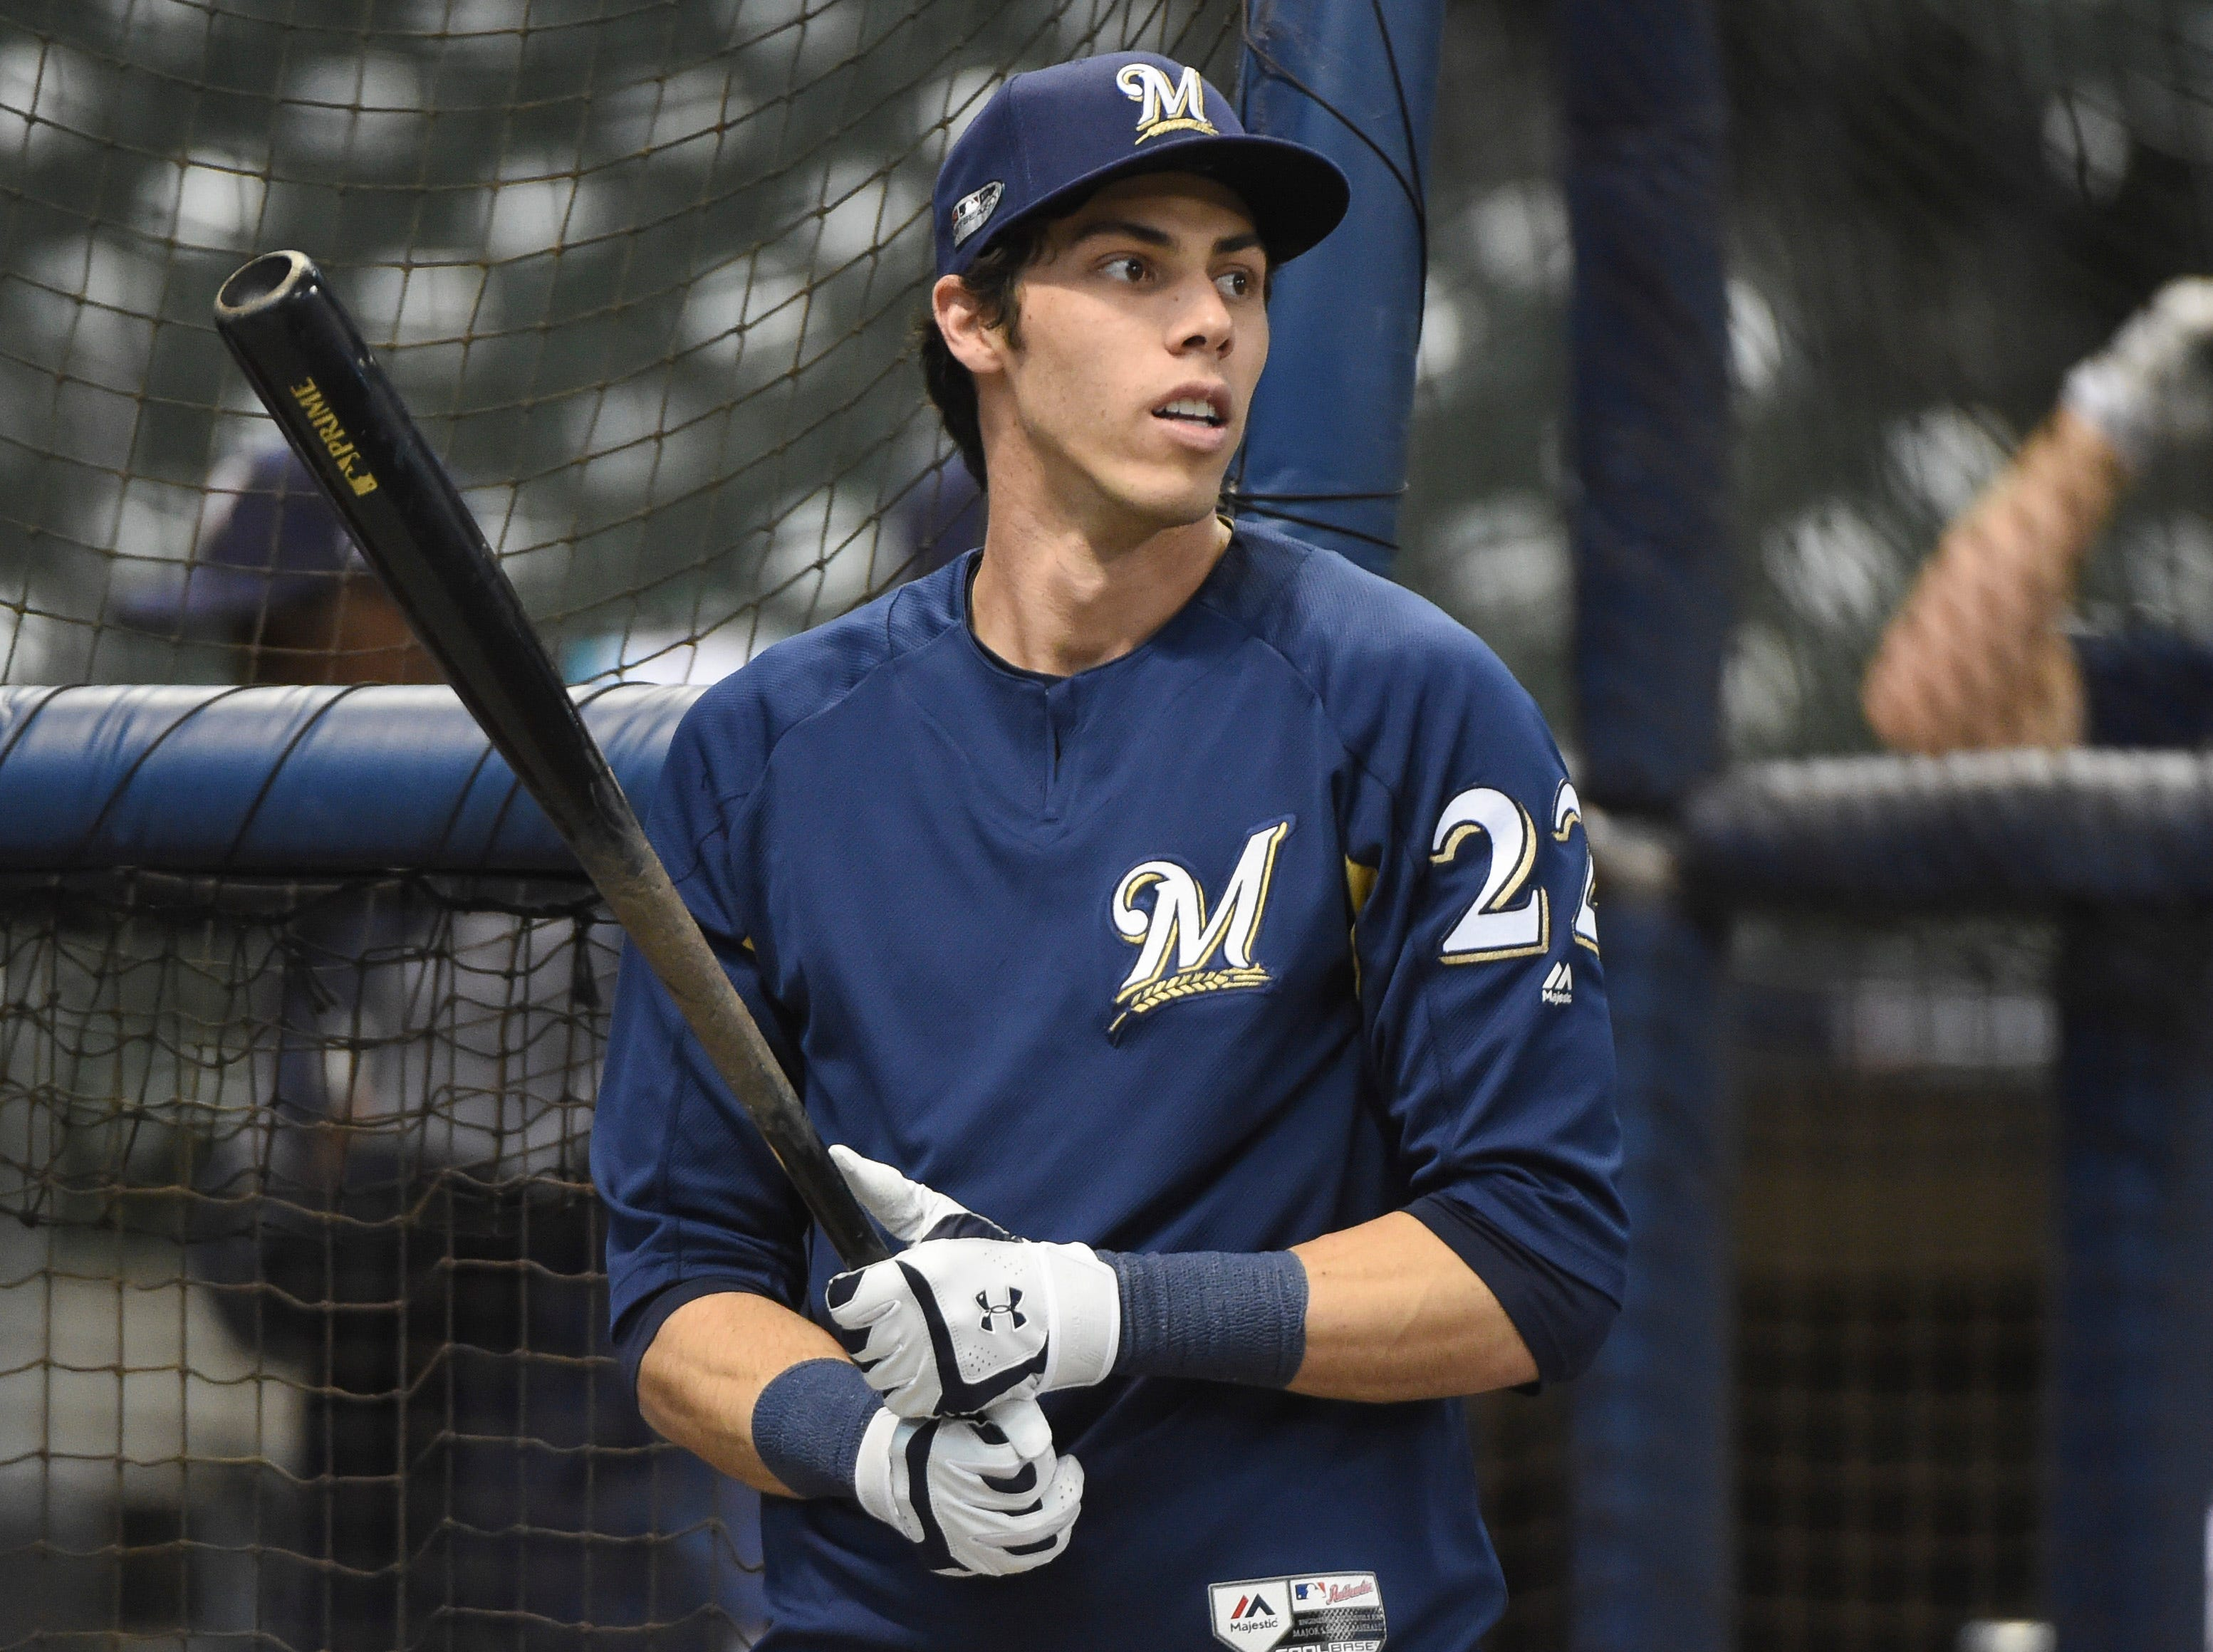 Home Www Dreshare Com: Christian Yelich And His Family